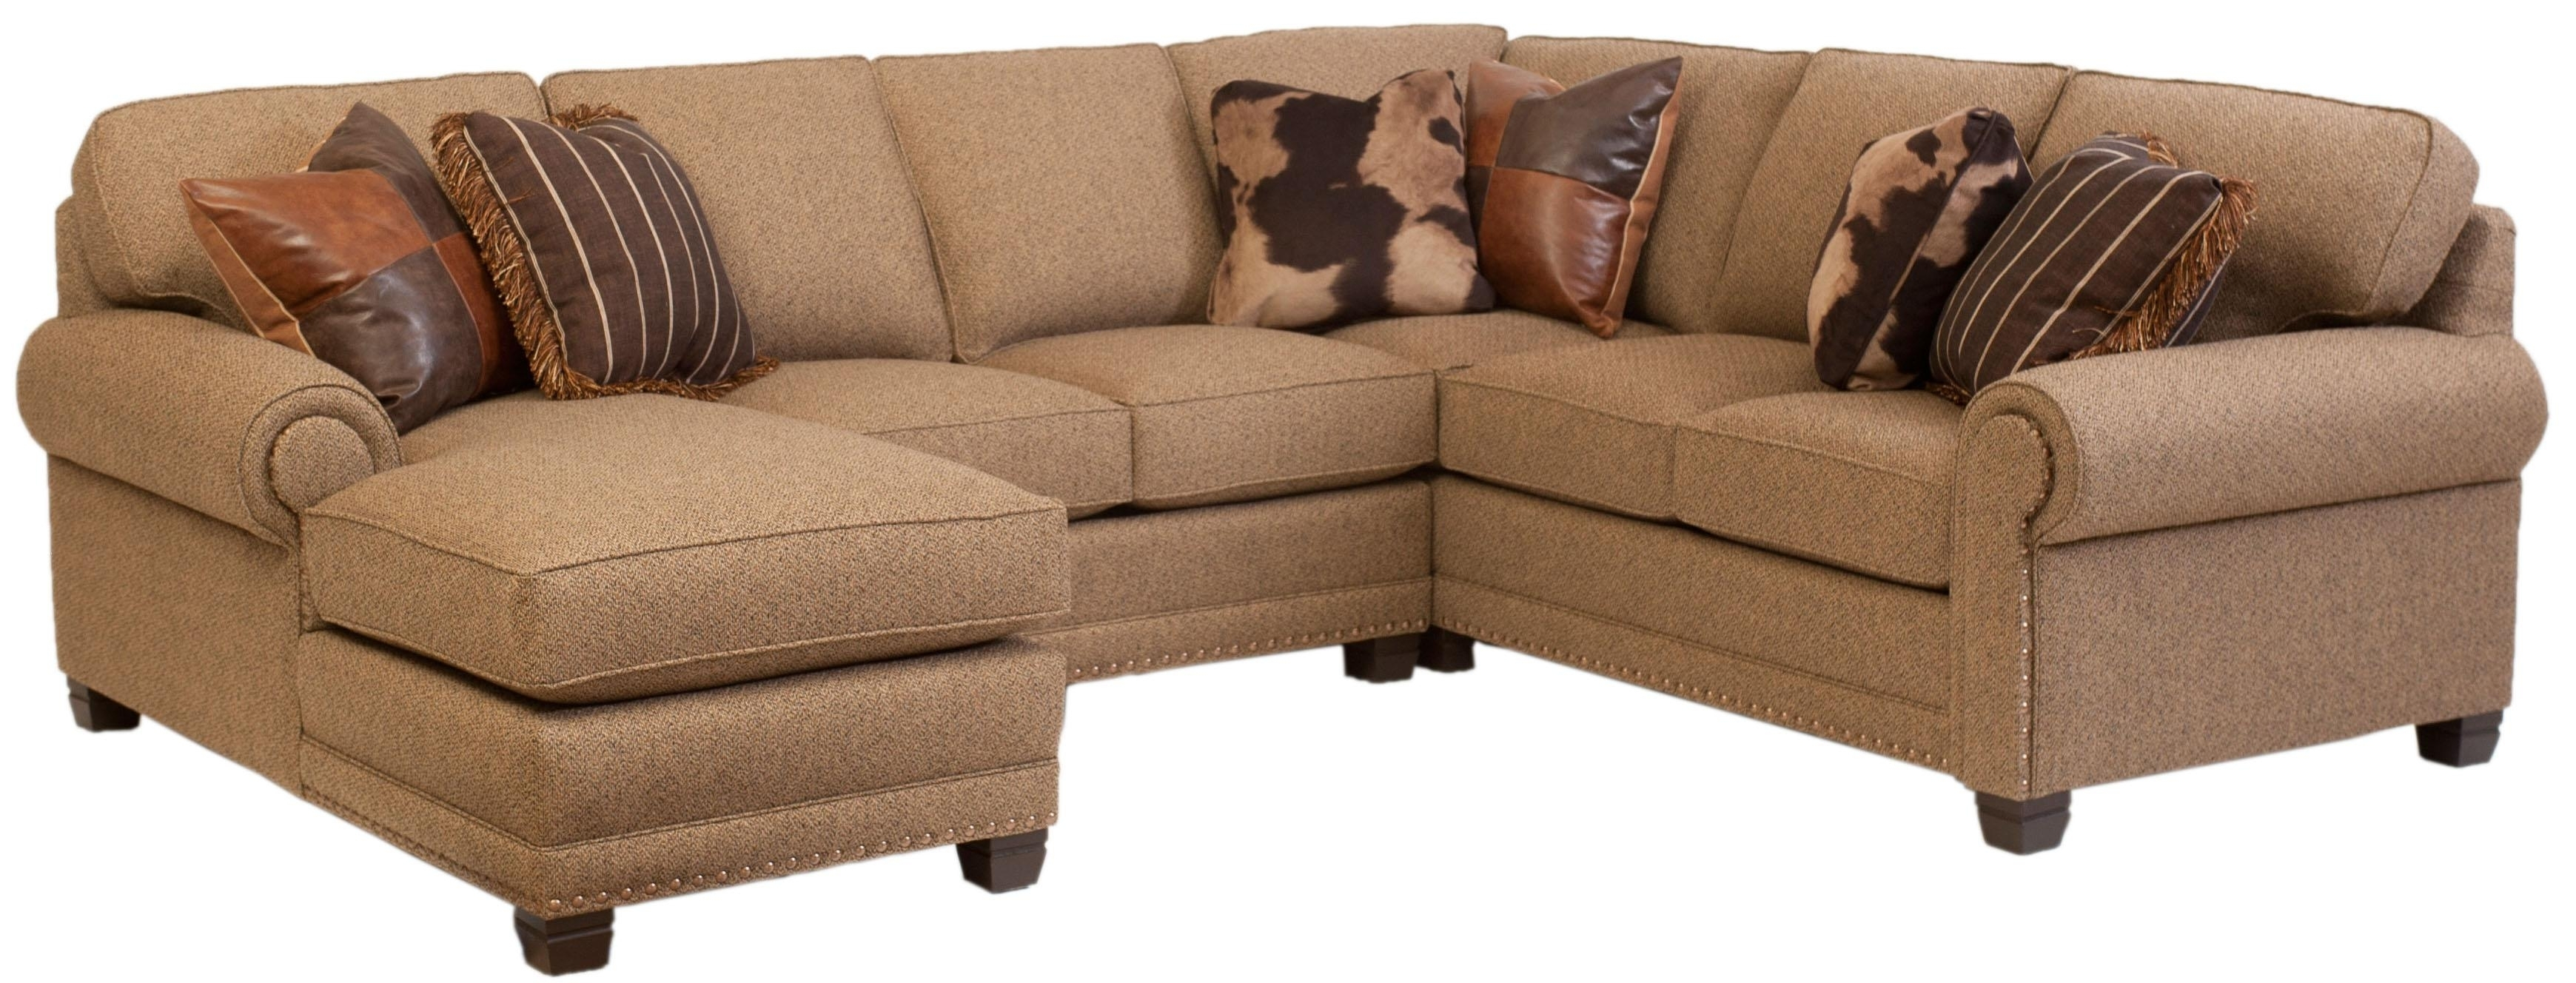 Remarkable 3 Piece Leather Sectional Sofa With Chaise 48 For intended for Gordon 3 Piece Sectionals With Raf Chaise (Image 25 of 30)